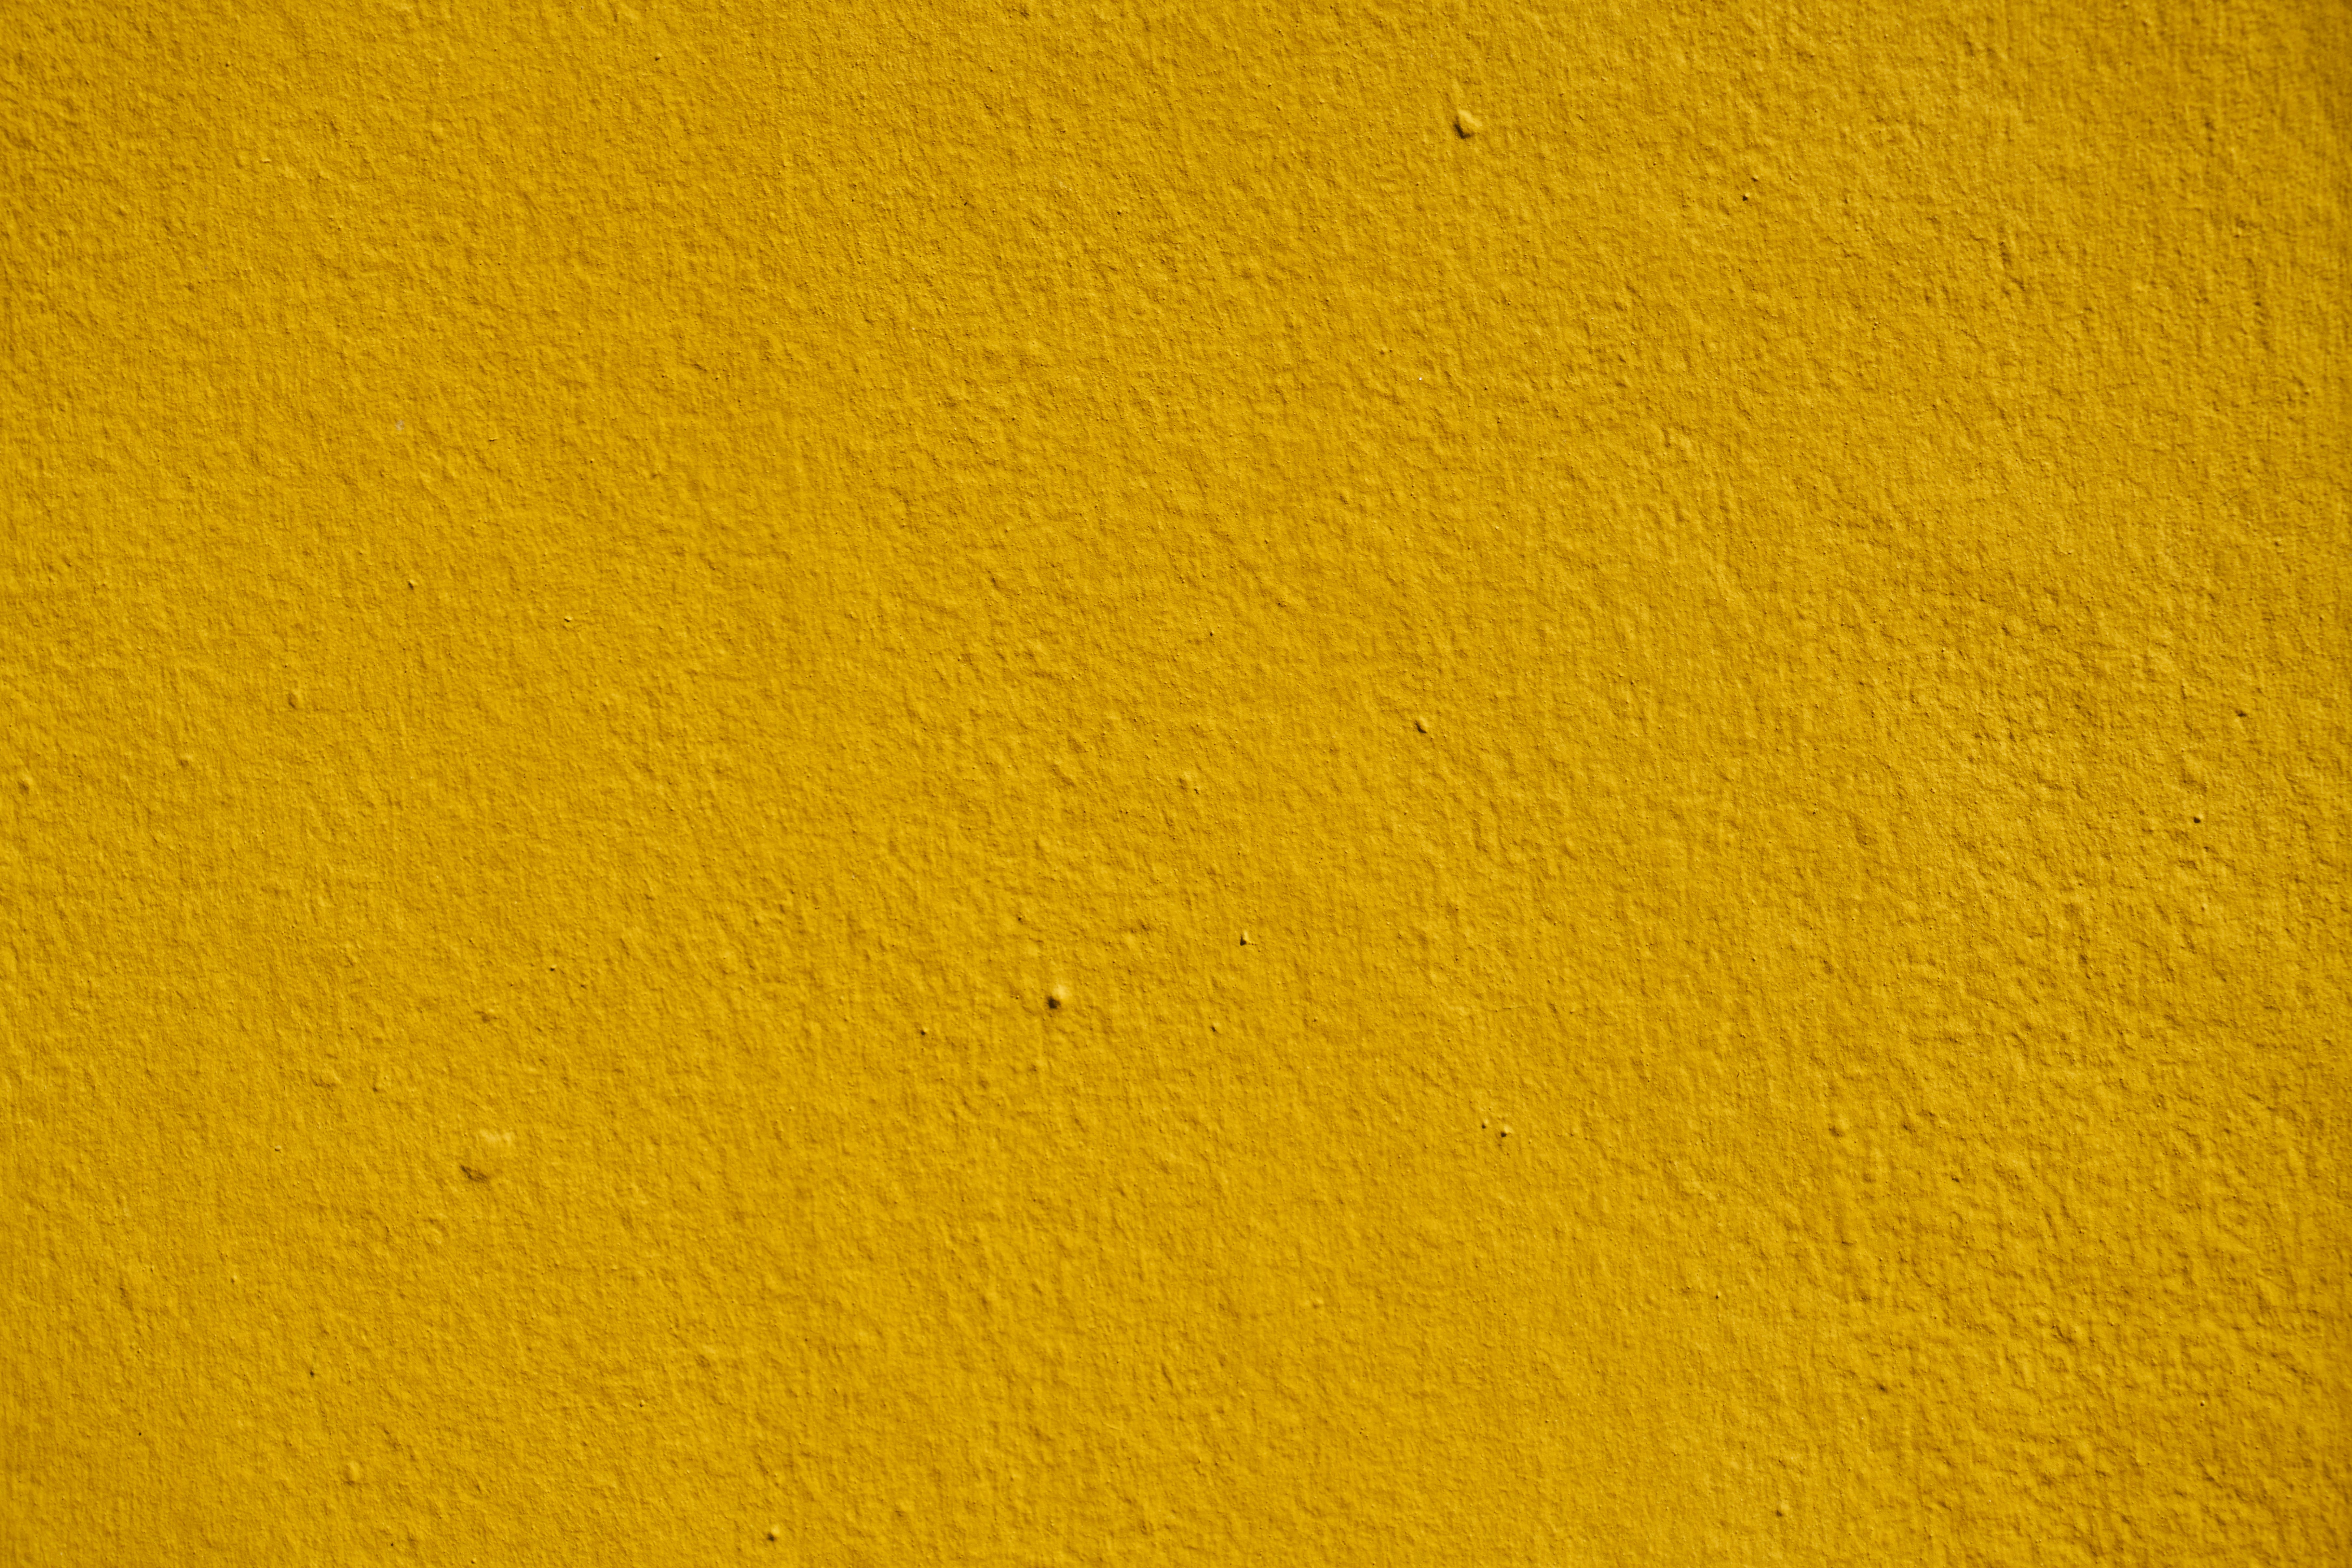 Free stock photo of backdrop, background, close up, detail